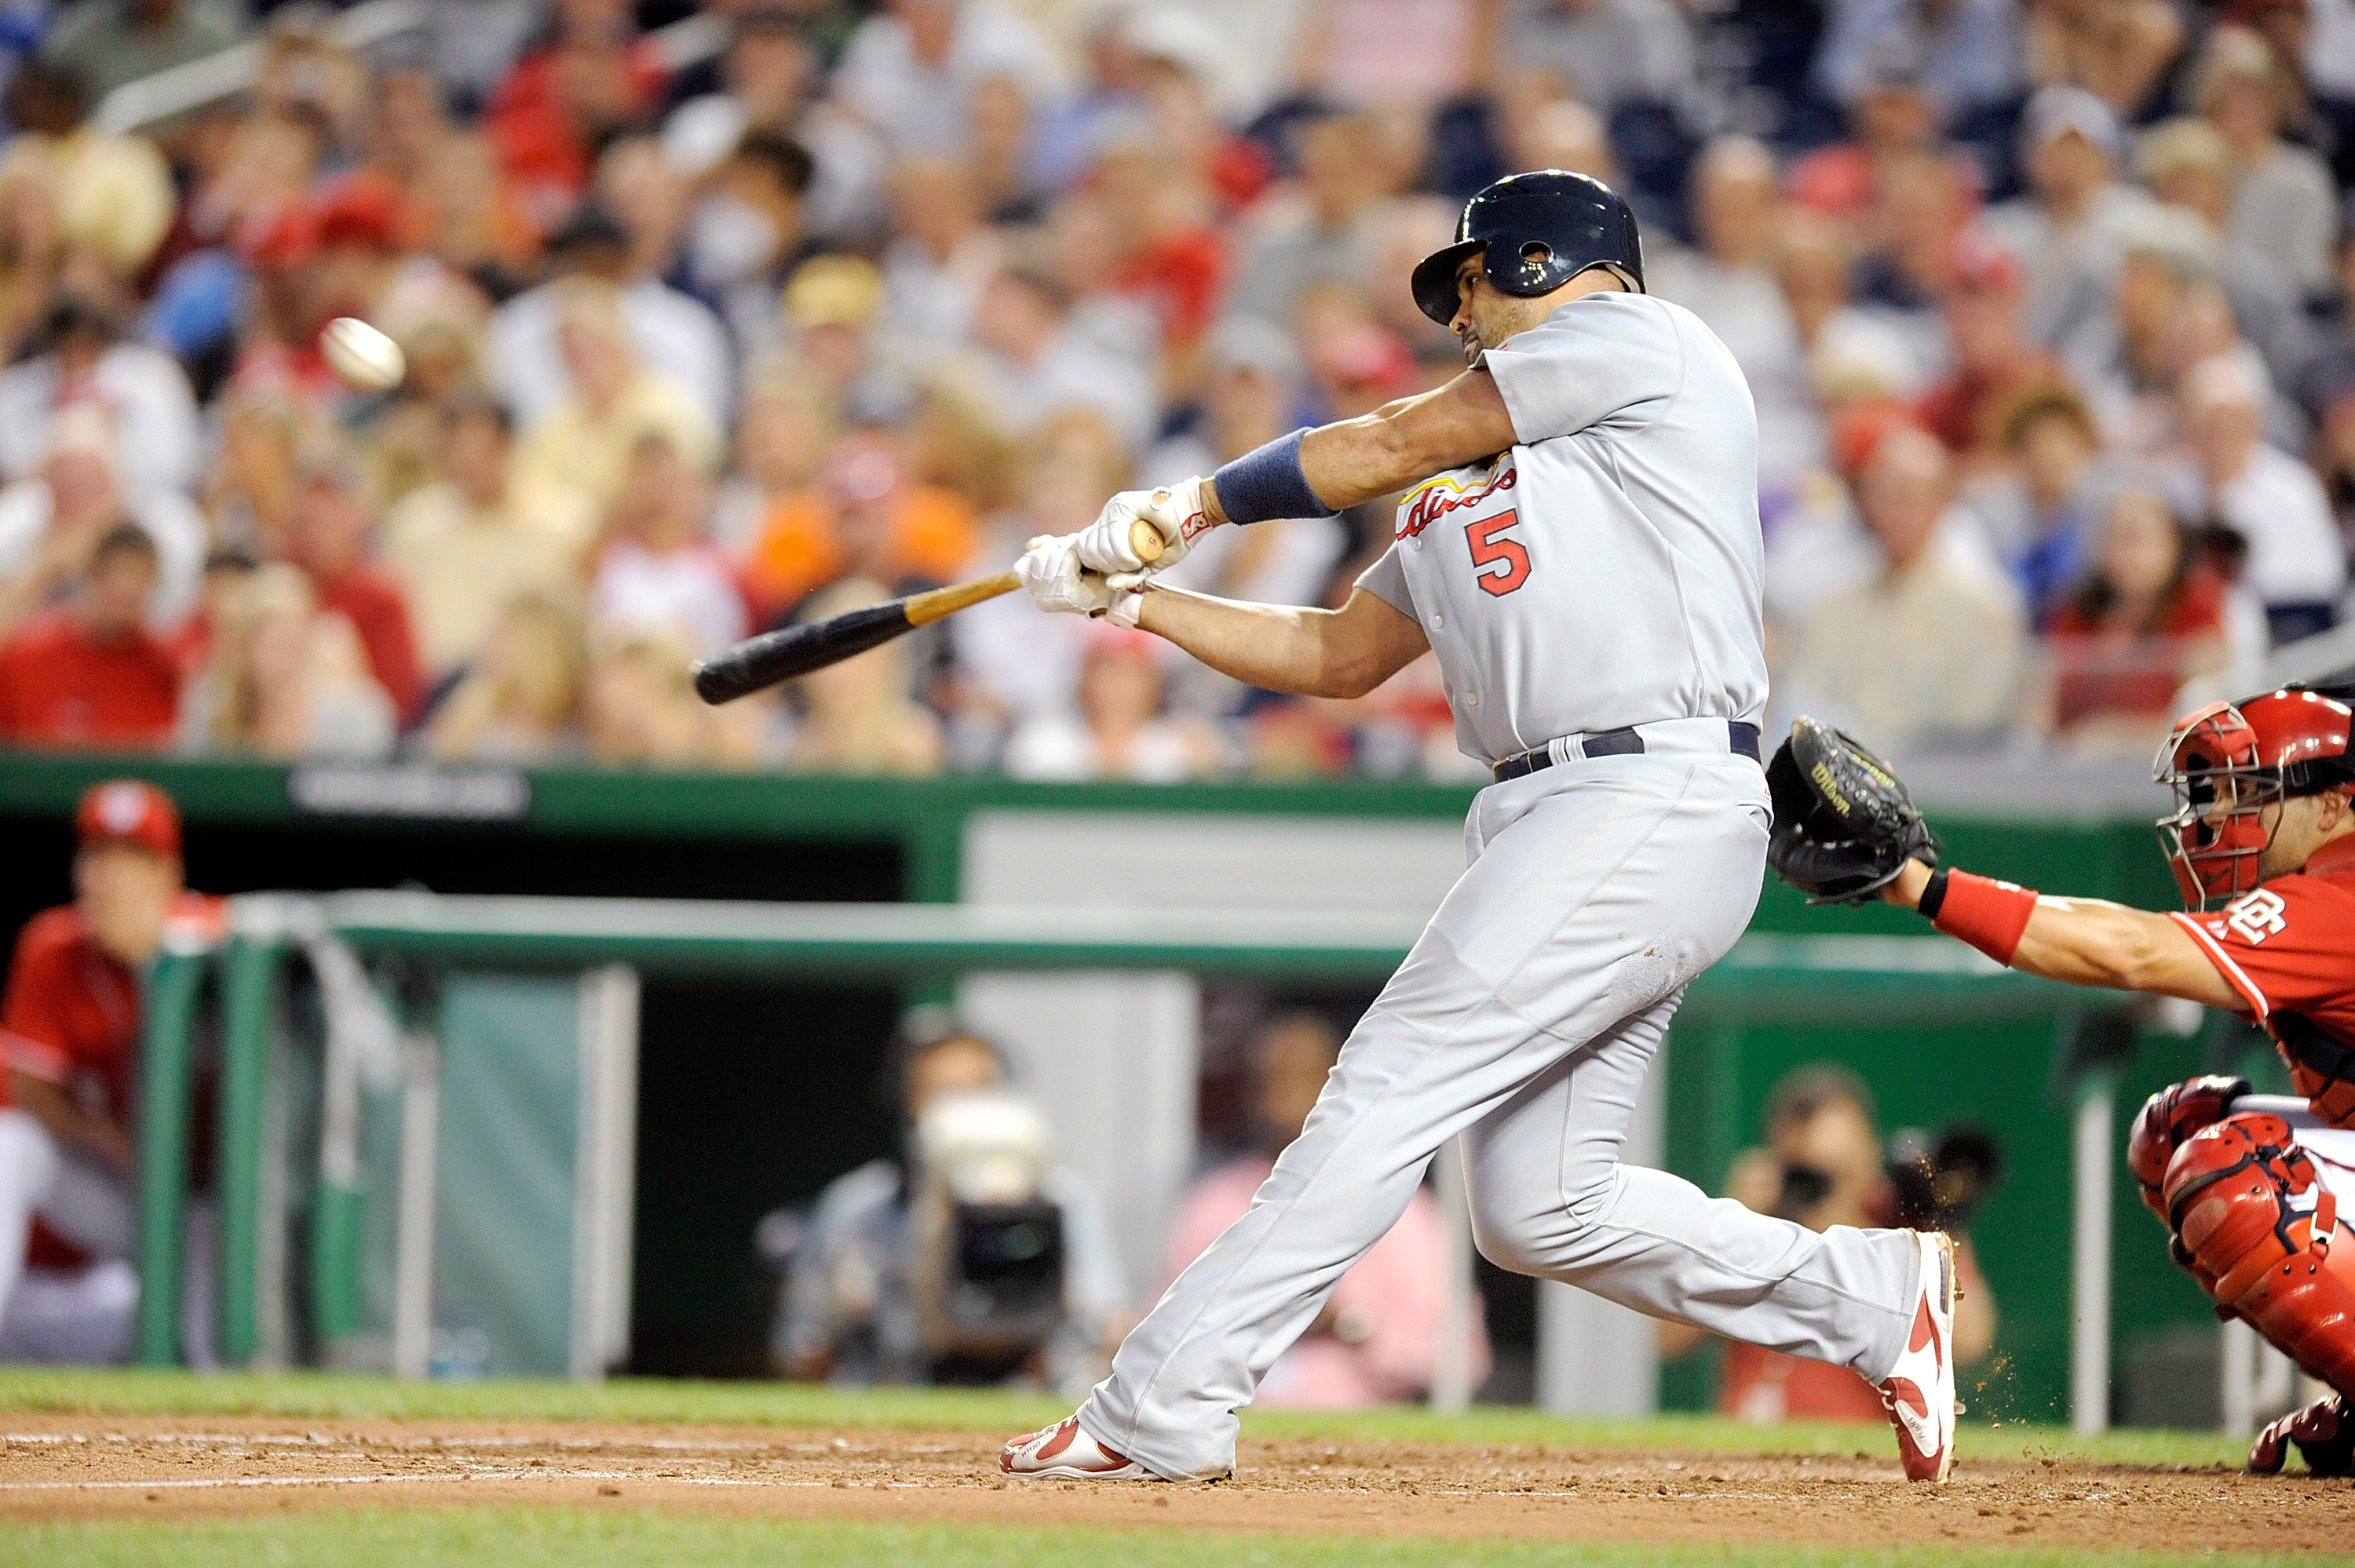 WASHINGTON - AUGUST 26:  Albert Pujols #5 of the St. Louis Cardinals hits a home run in the fourth inning against the Washington Nationals at Nationals Park on August 26, 2010 in Washington, DC. It was the 400th home run of his career. (Photo by Greg Fium